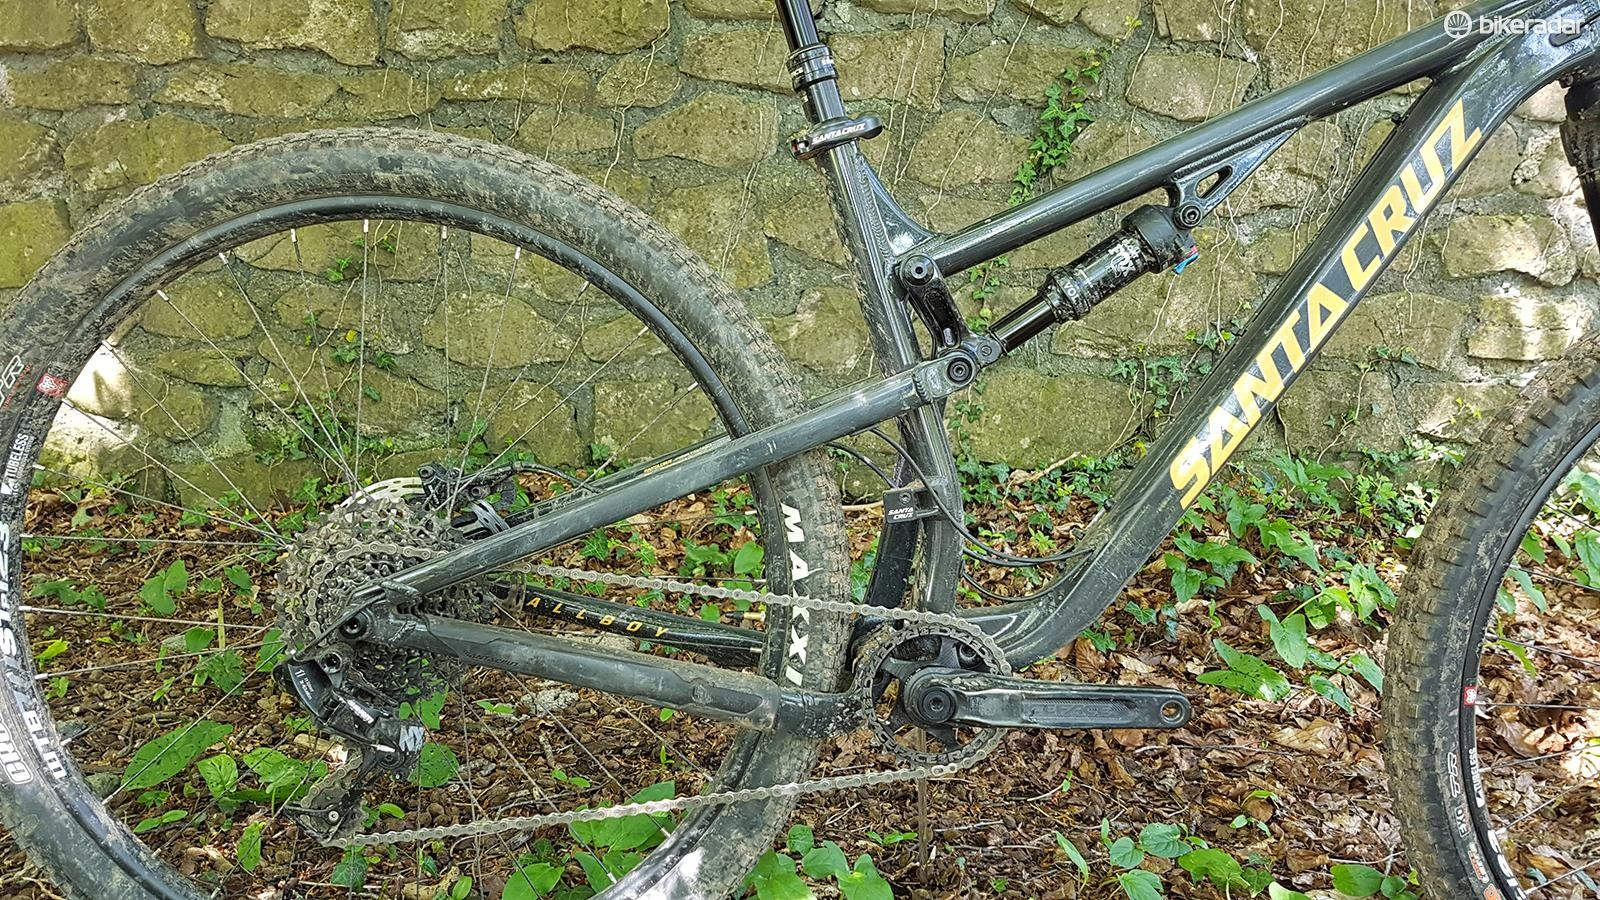 The VPP suspension linkage has been seen on Santa Cruz bikes for a long time now and offers a great ride